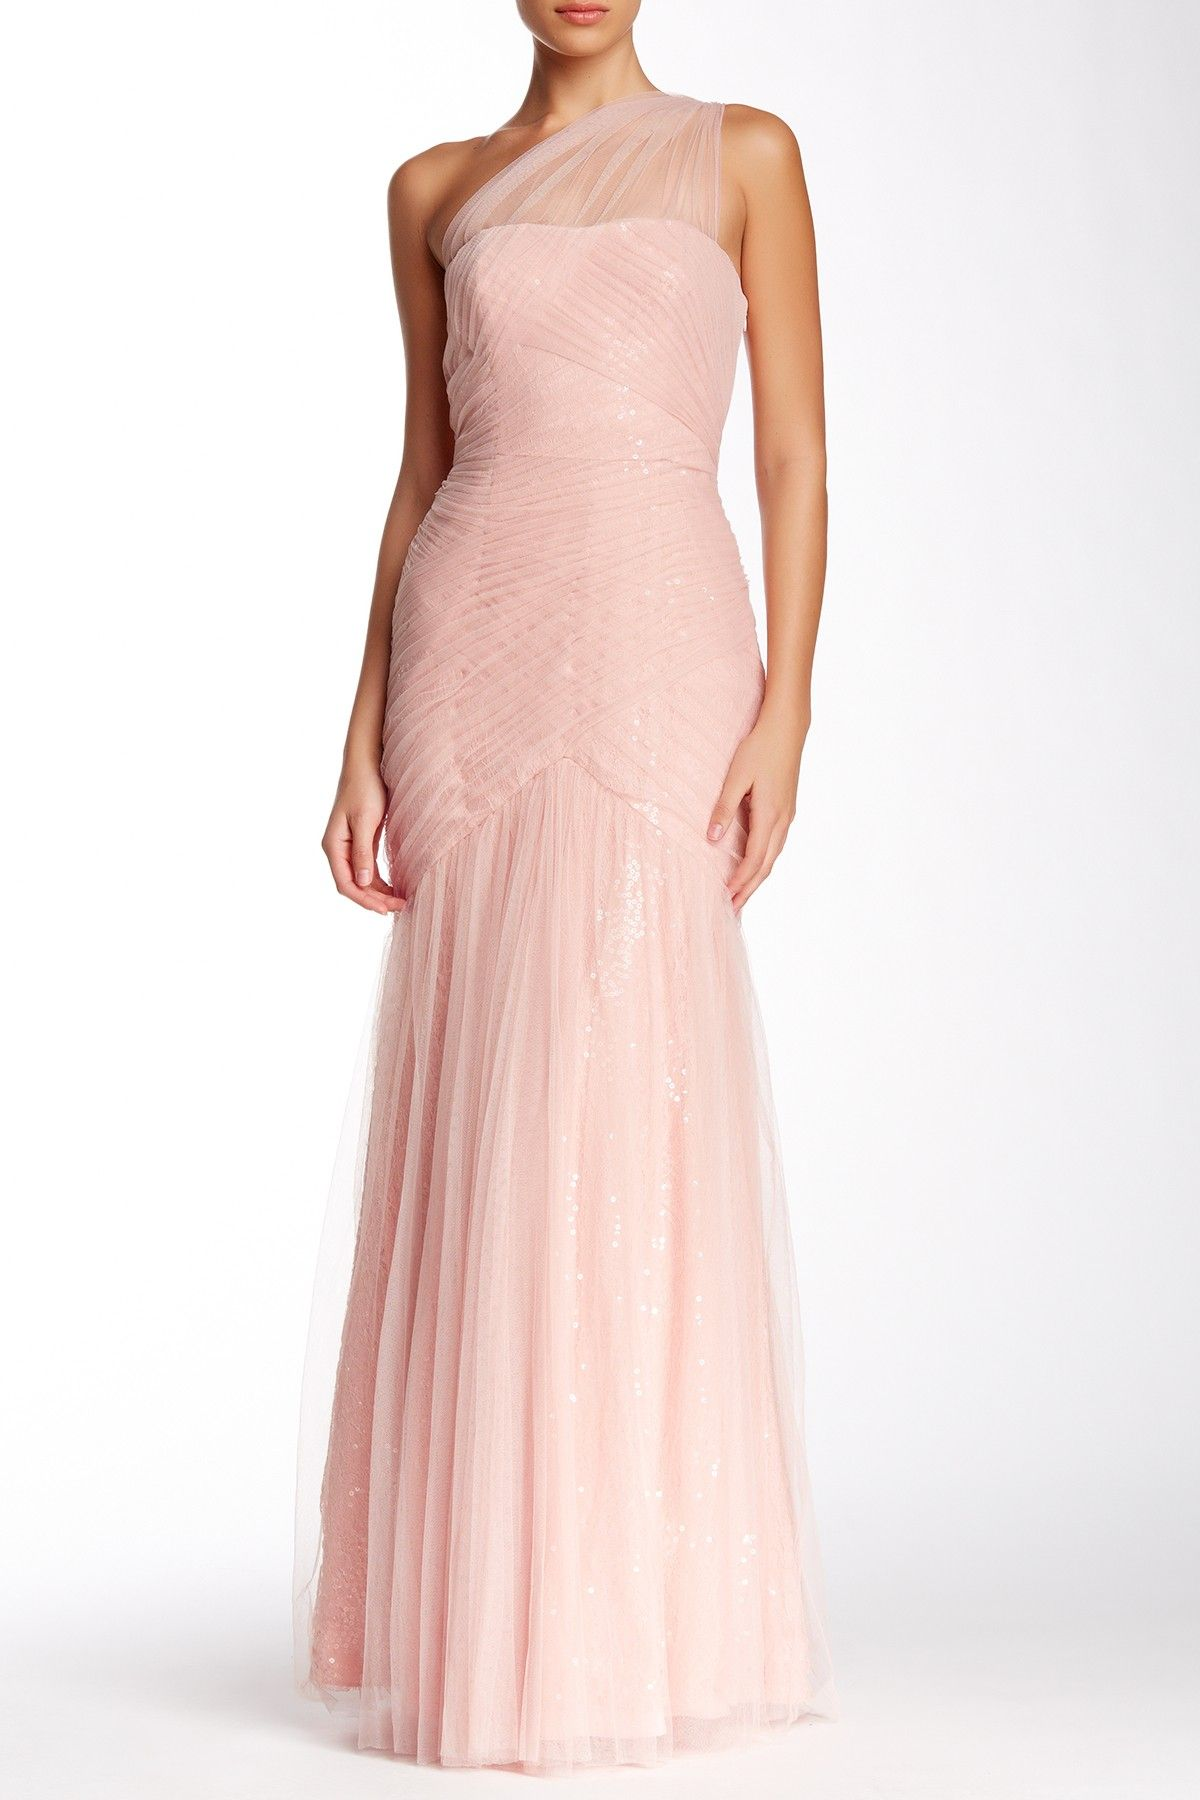 One Shoulder Ruched Gown | Monique lhuillier, Gowns and Shoulder